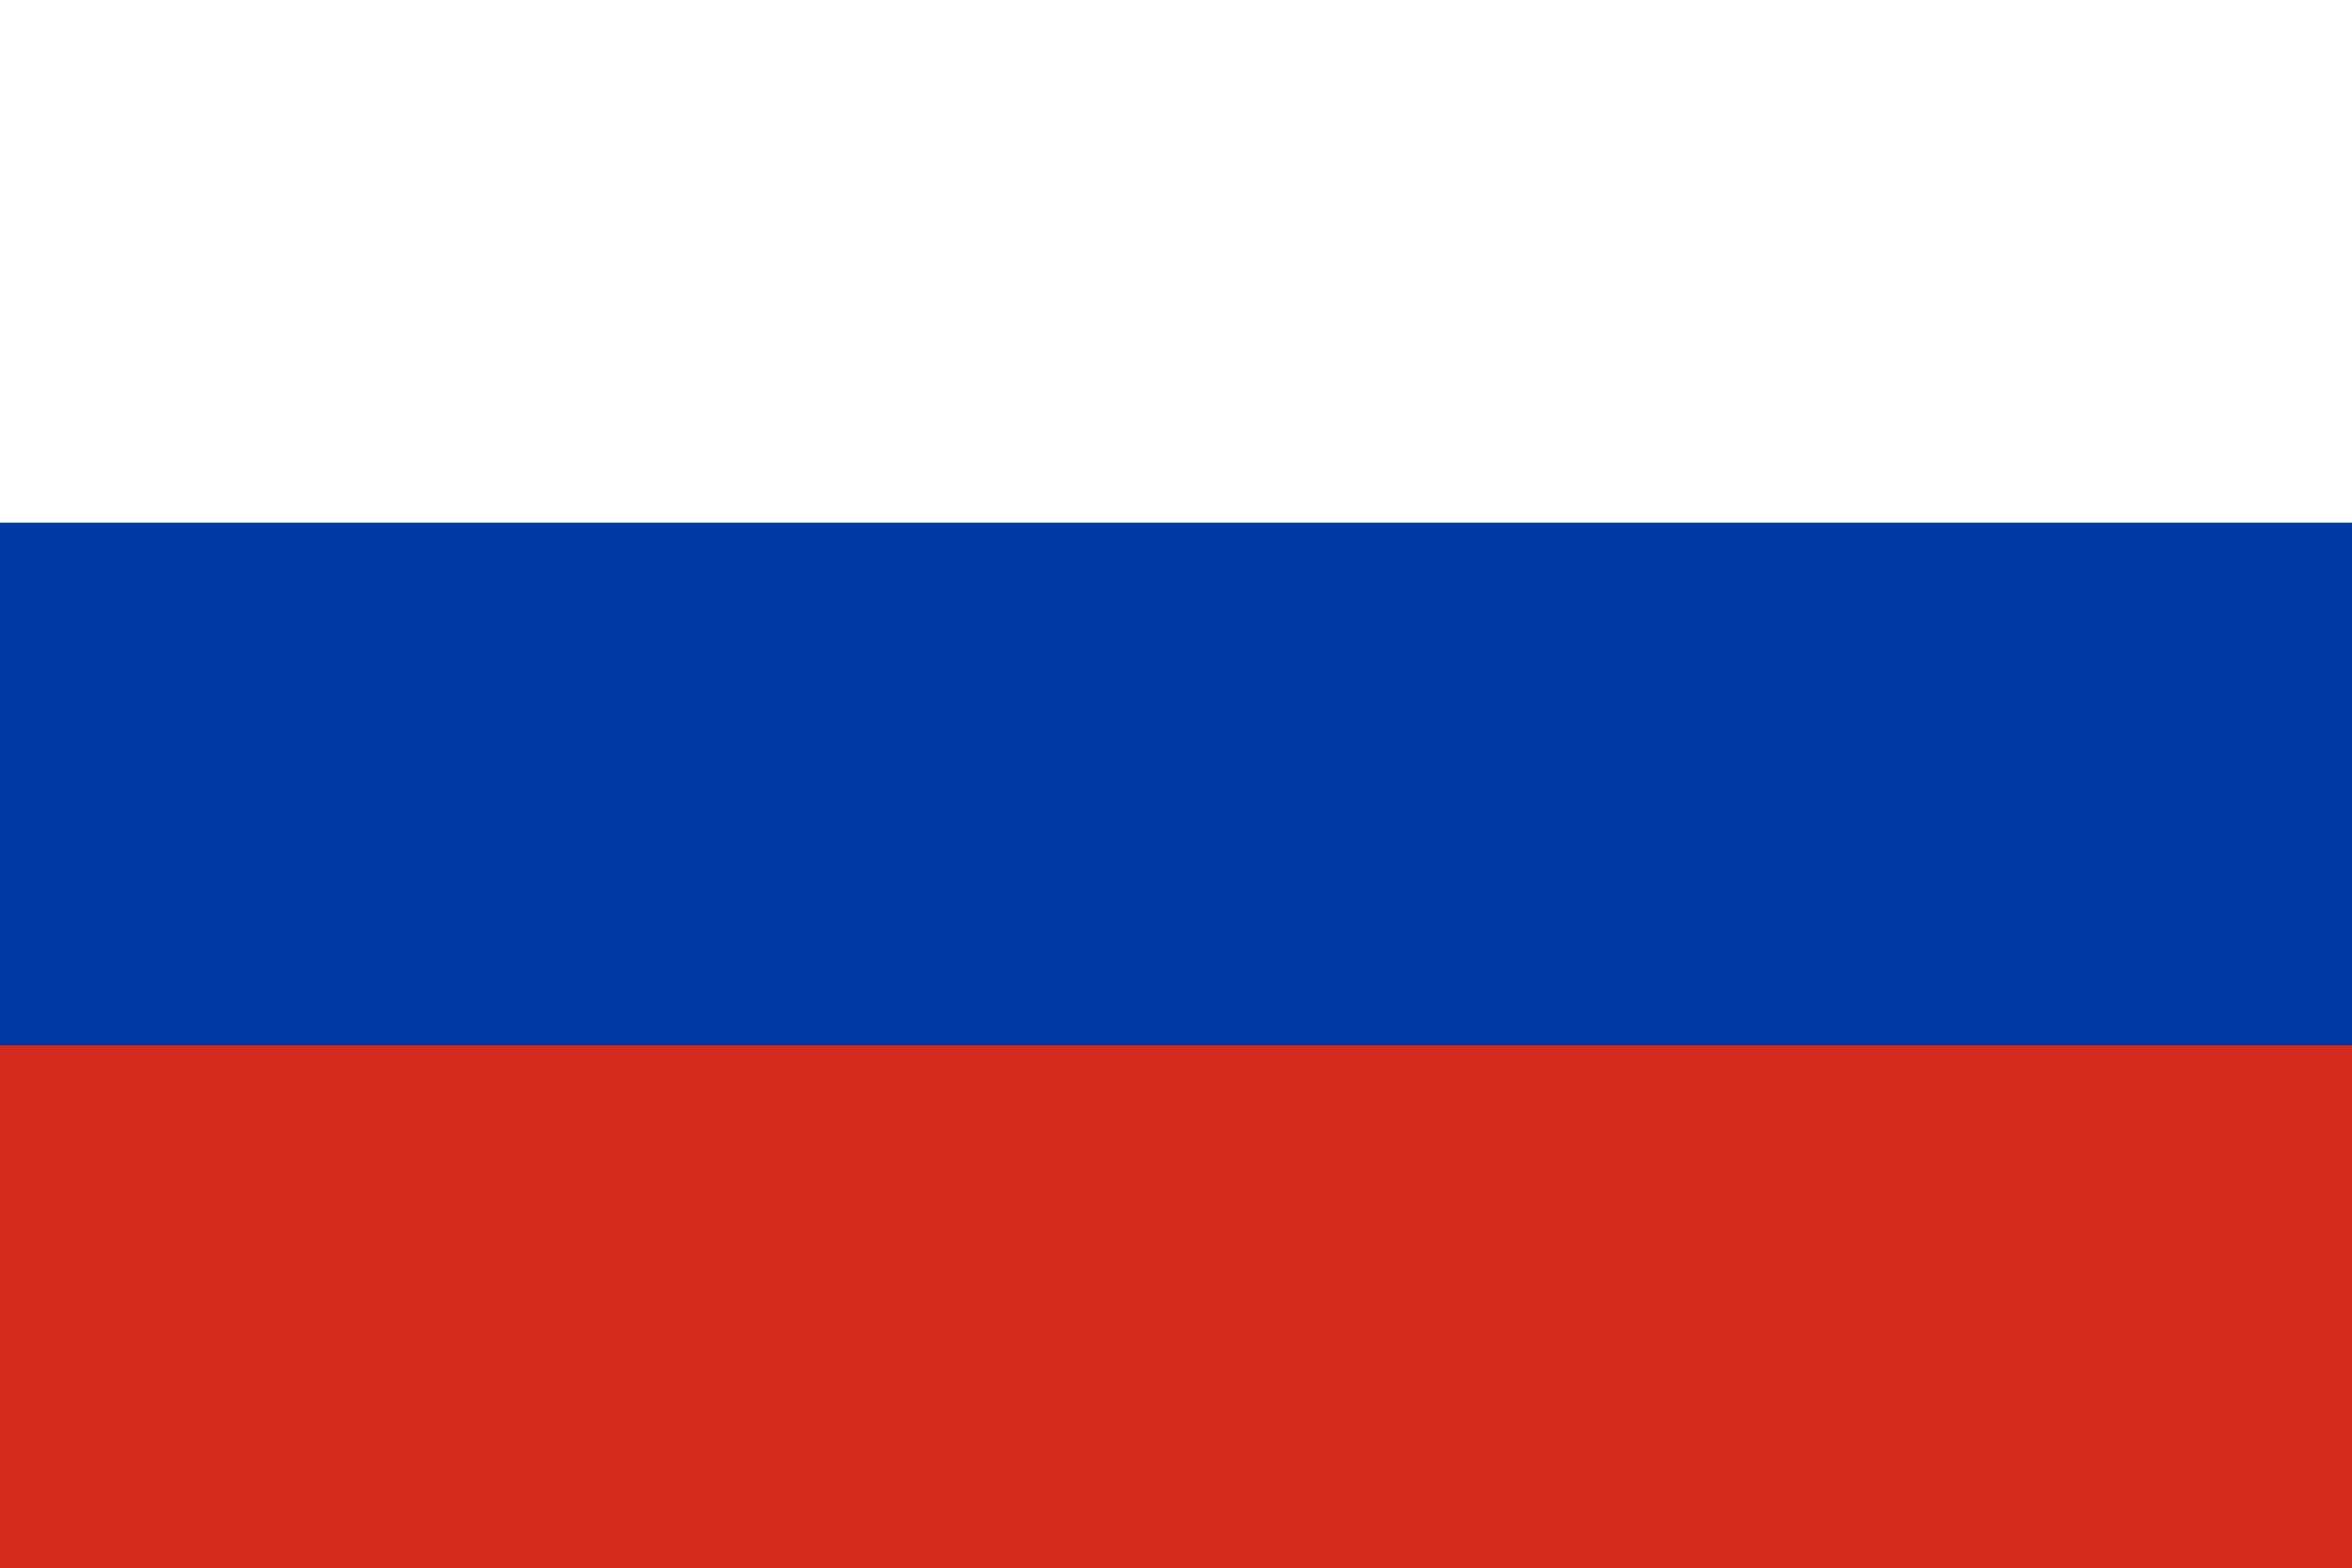 Flag_of_Russia.svg.png